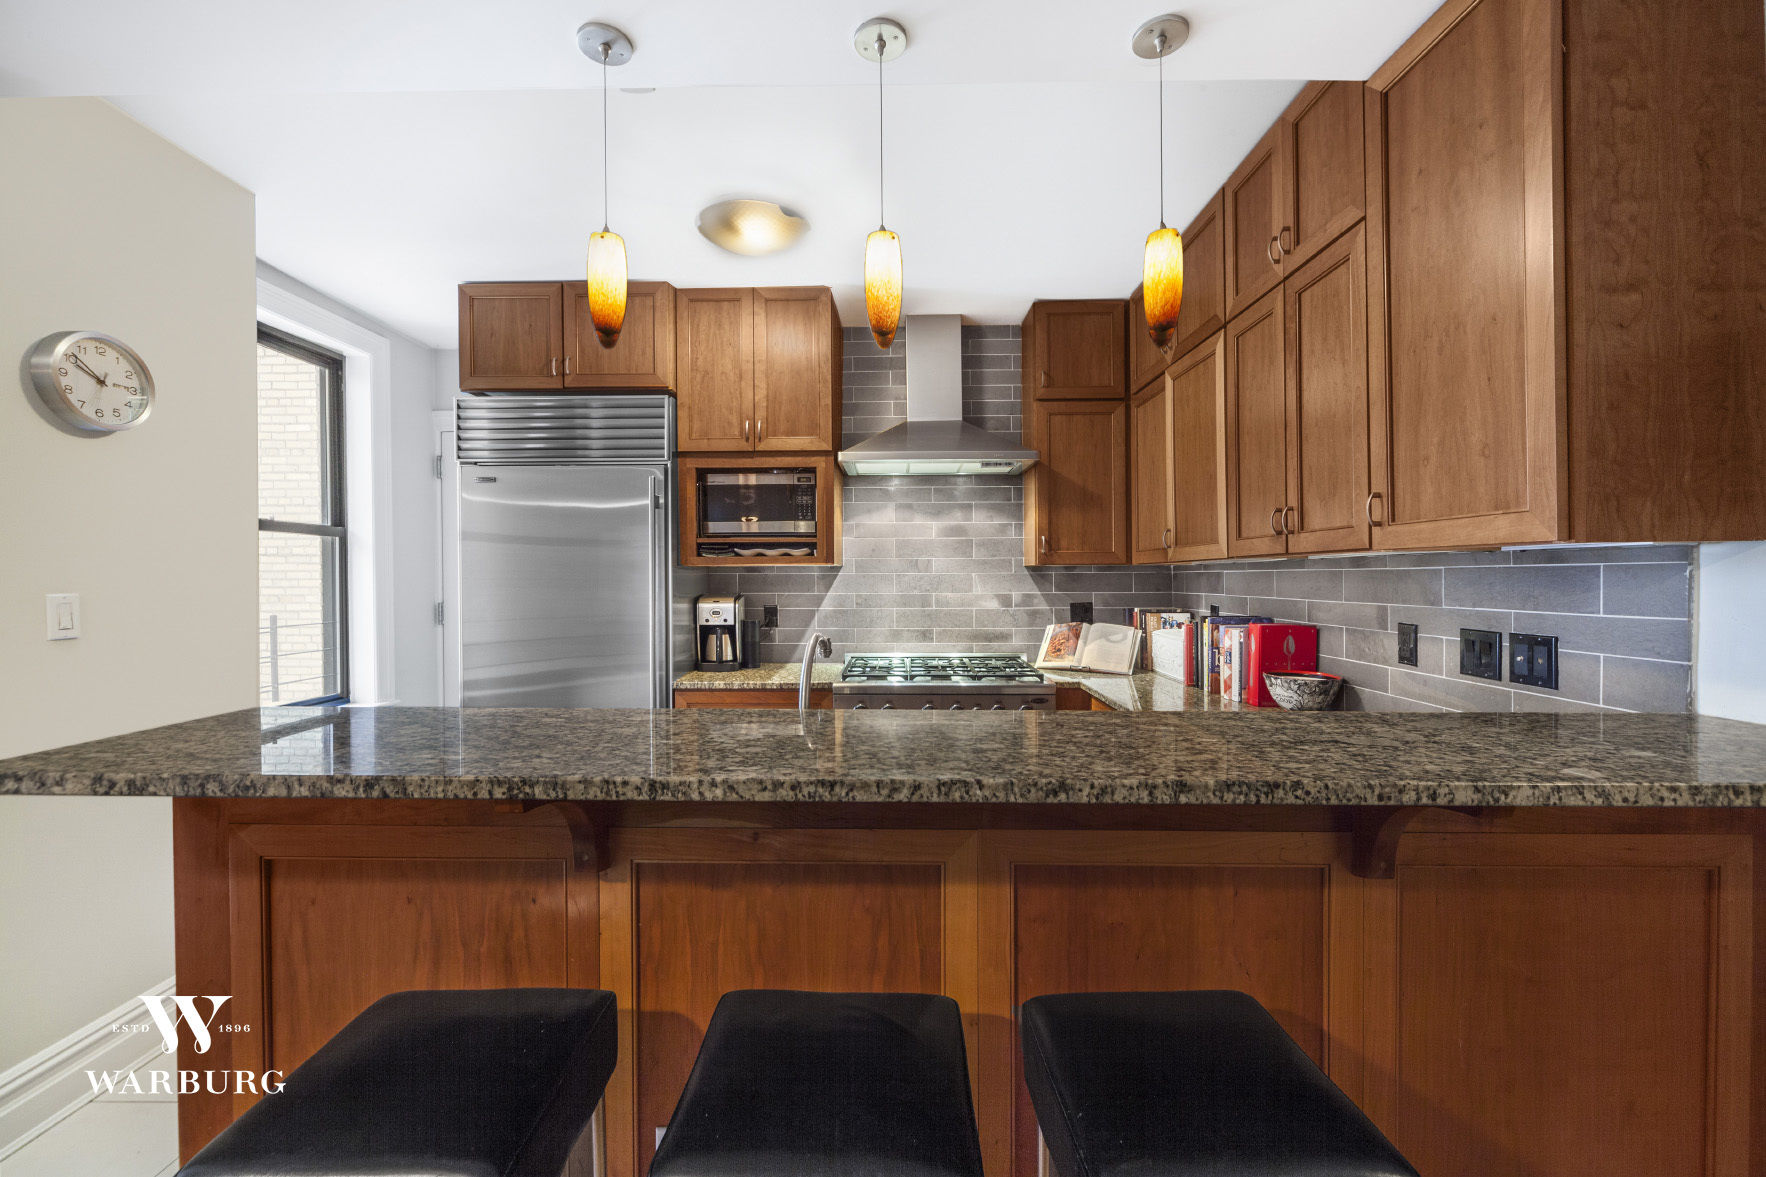 535 West 110th Street, Apt 8/9C Photo 1 - WR-1154338